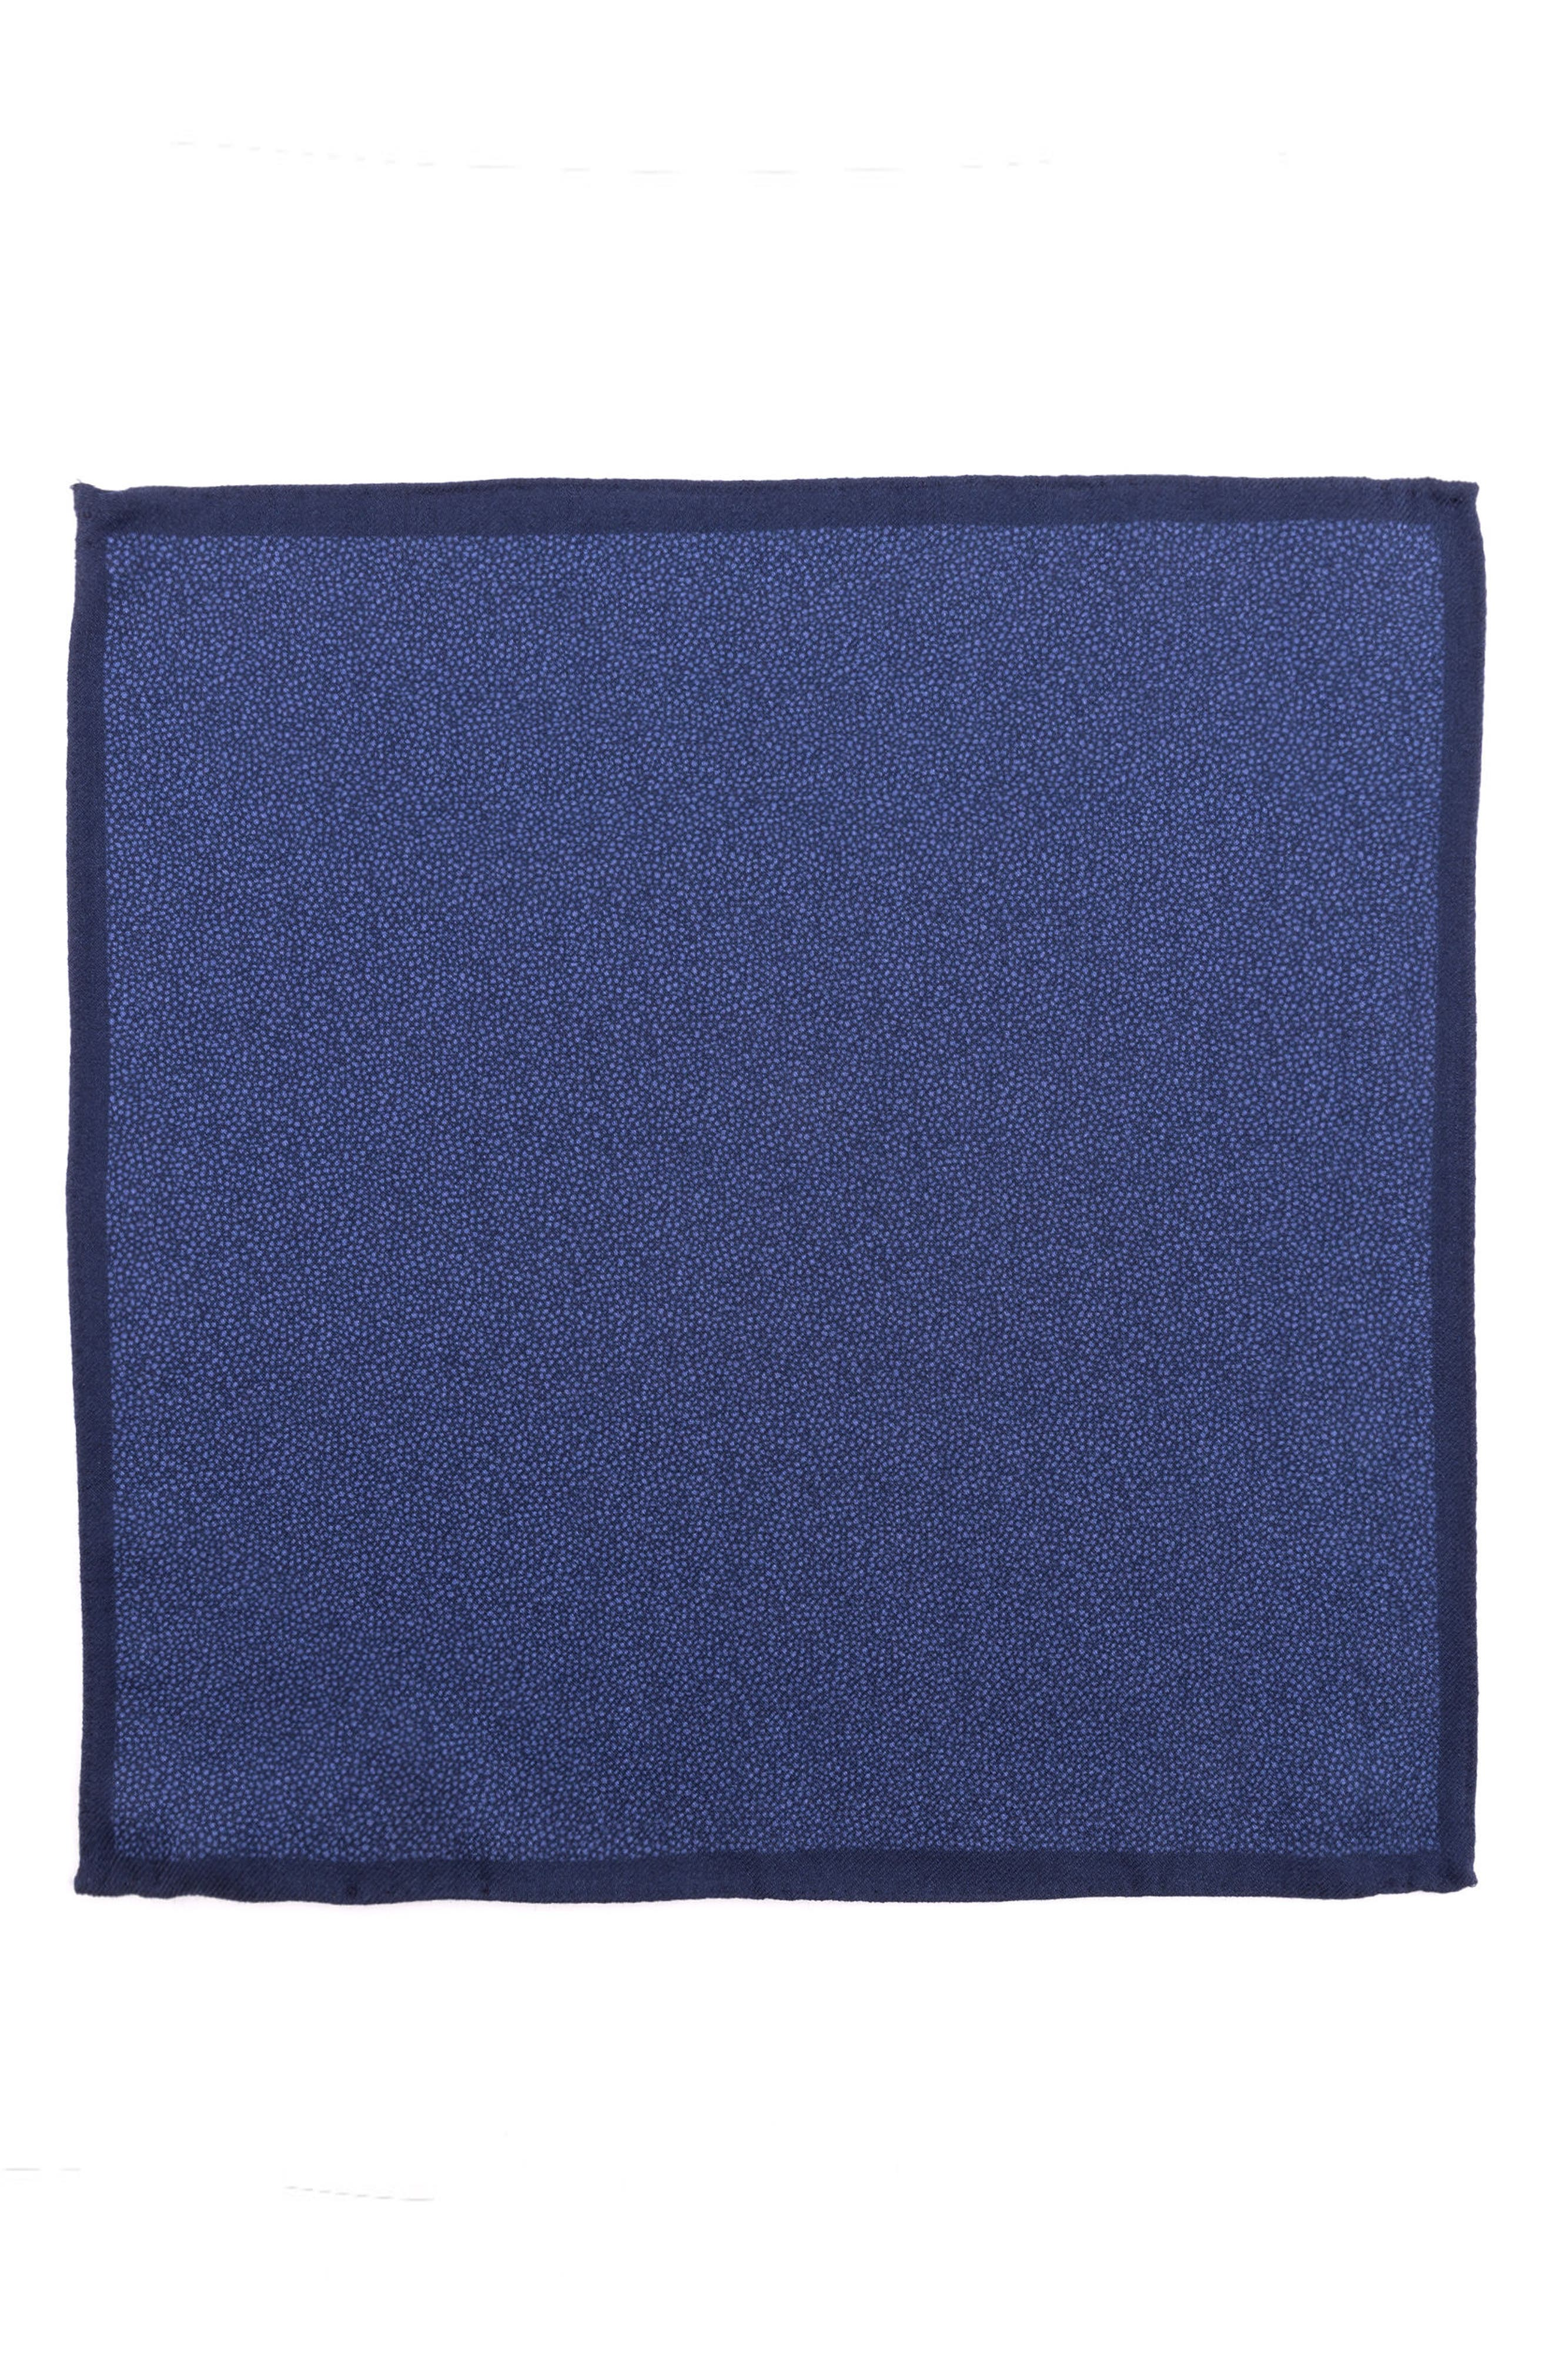 Alternate Image 2  - Ted Baker London Dot Wool Pocket Square